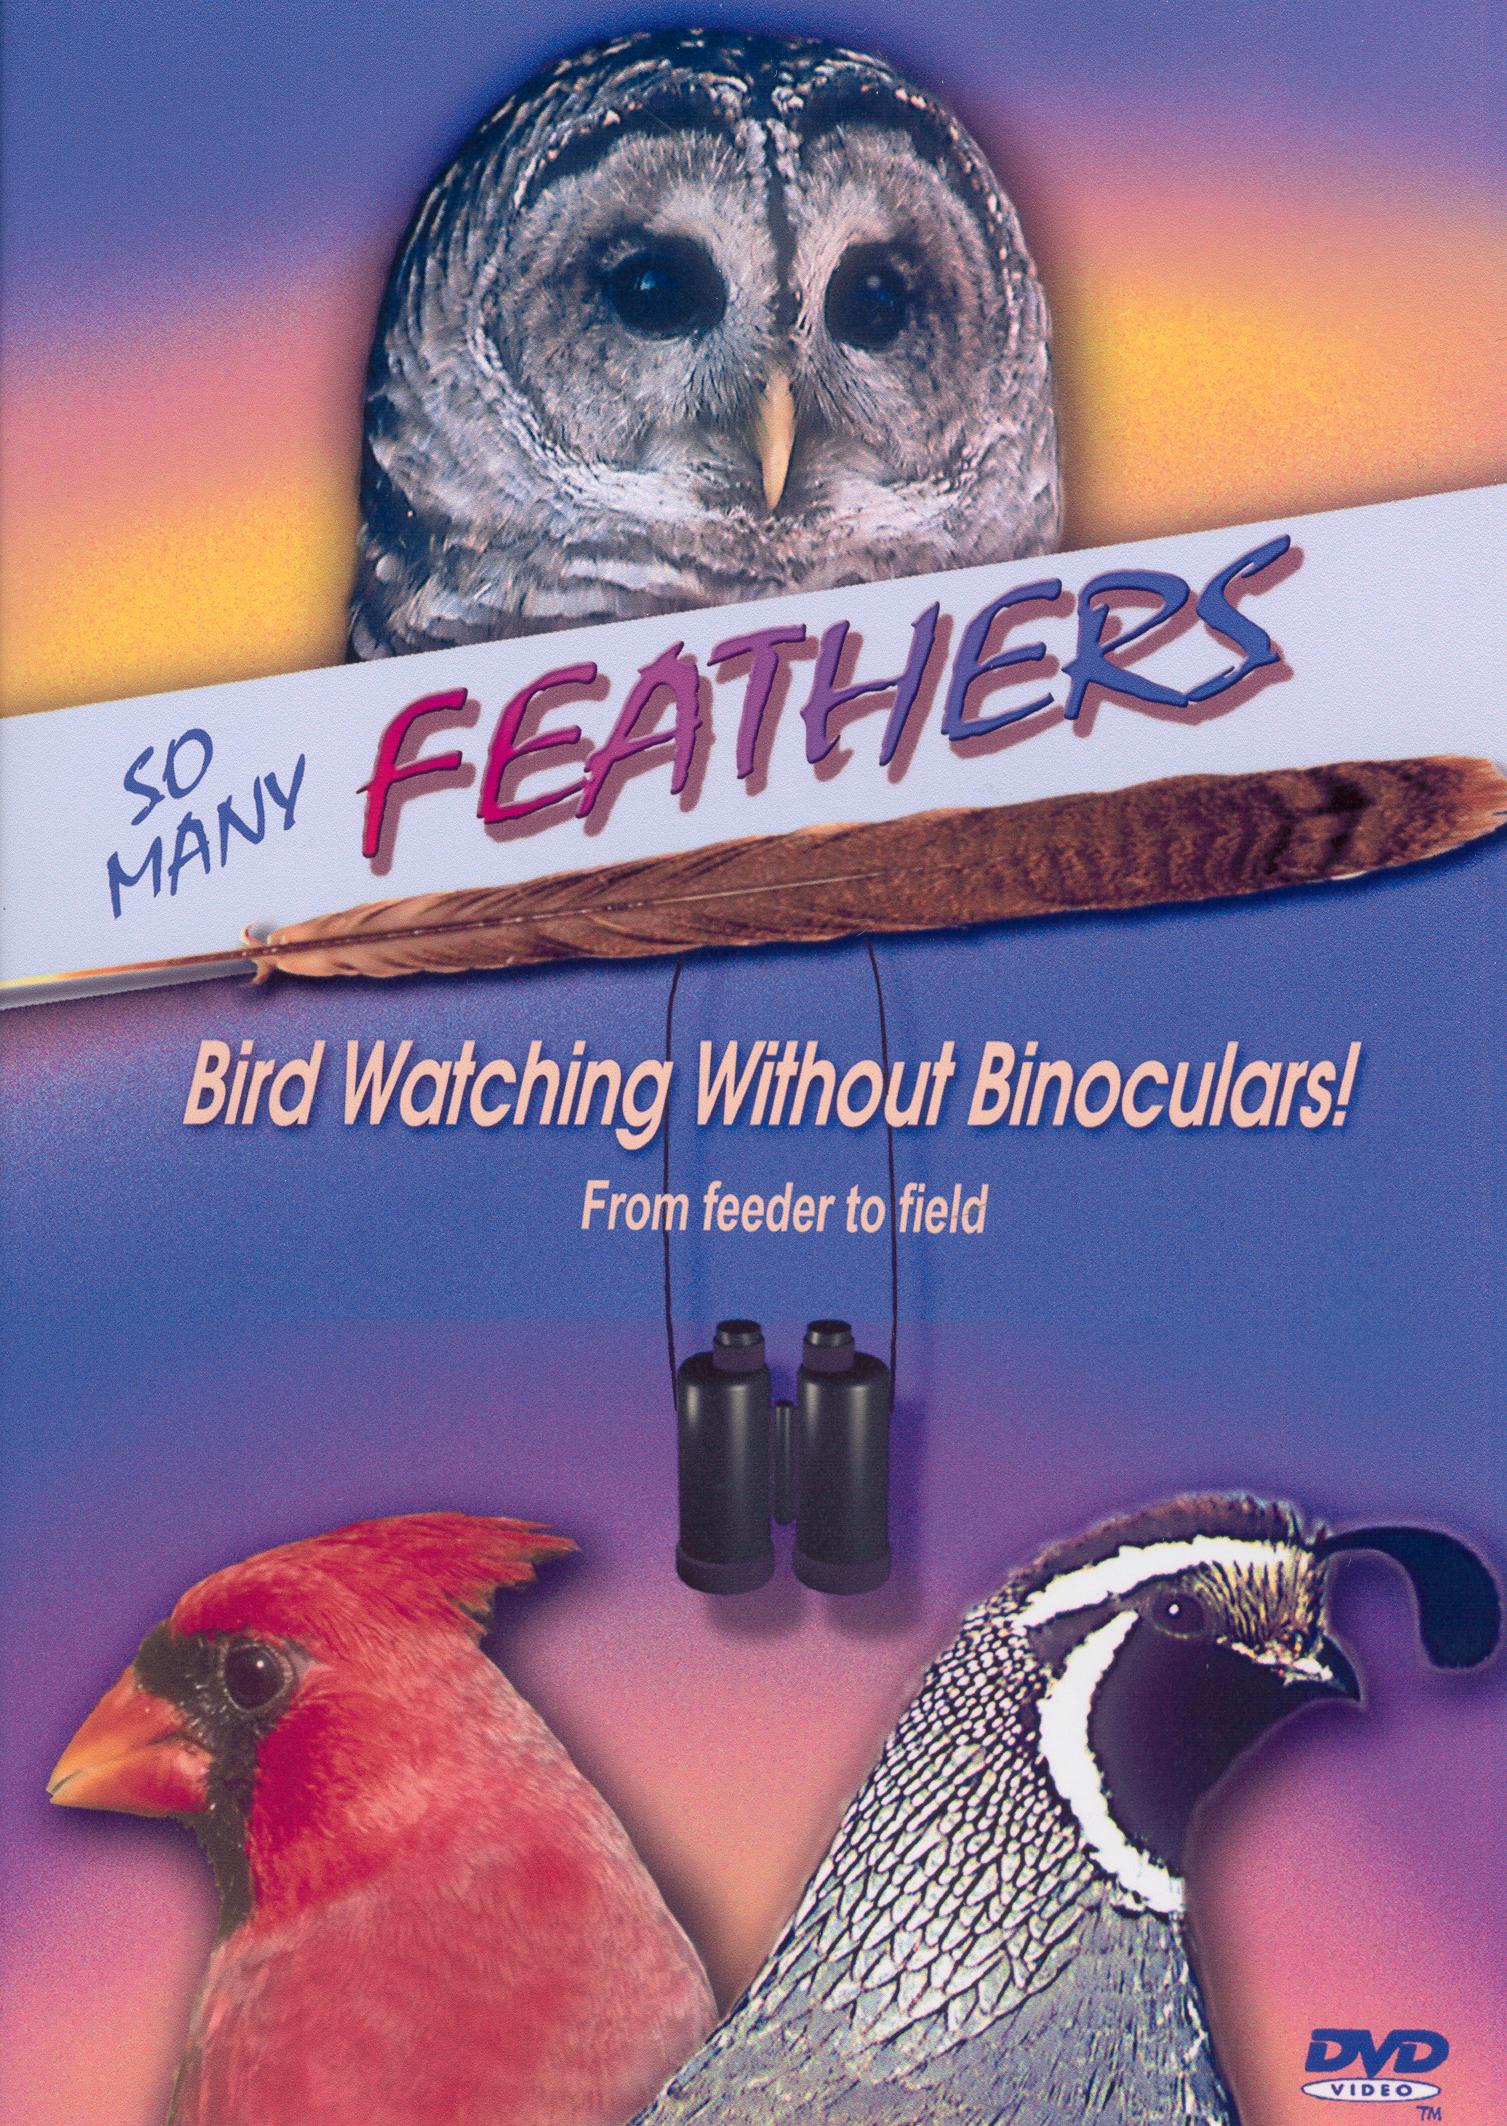 So Many Feathers: Bird Watching Without Binoculars